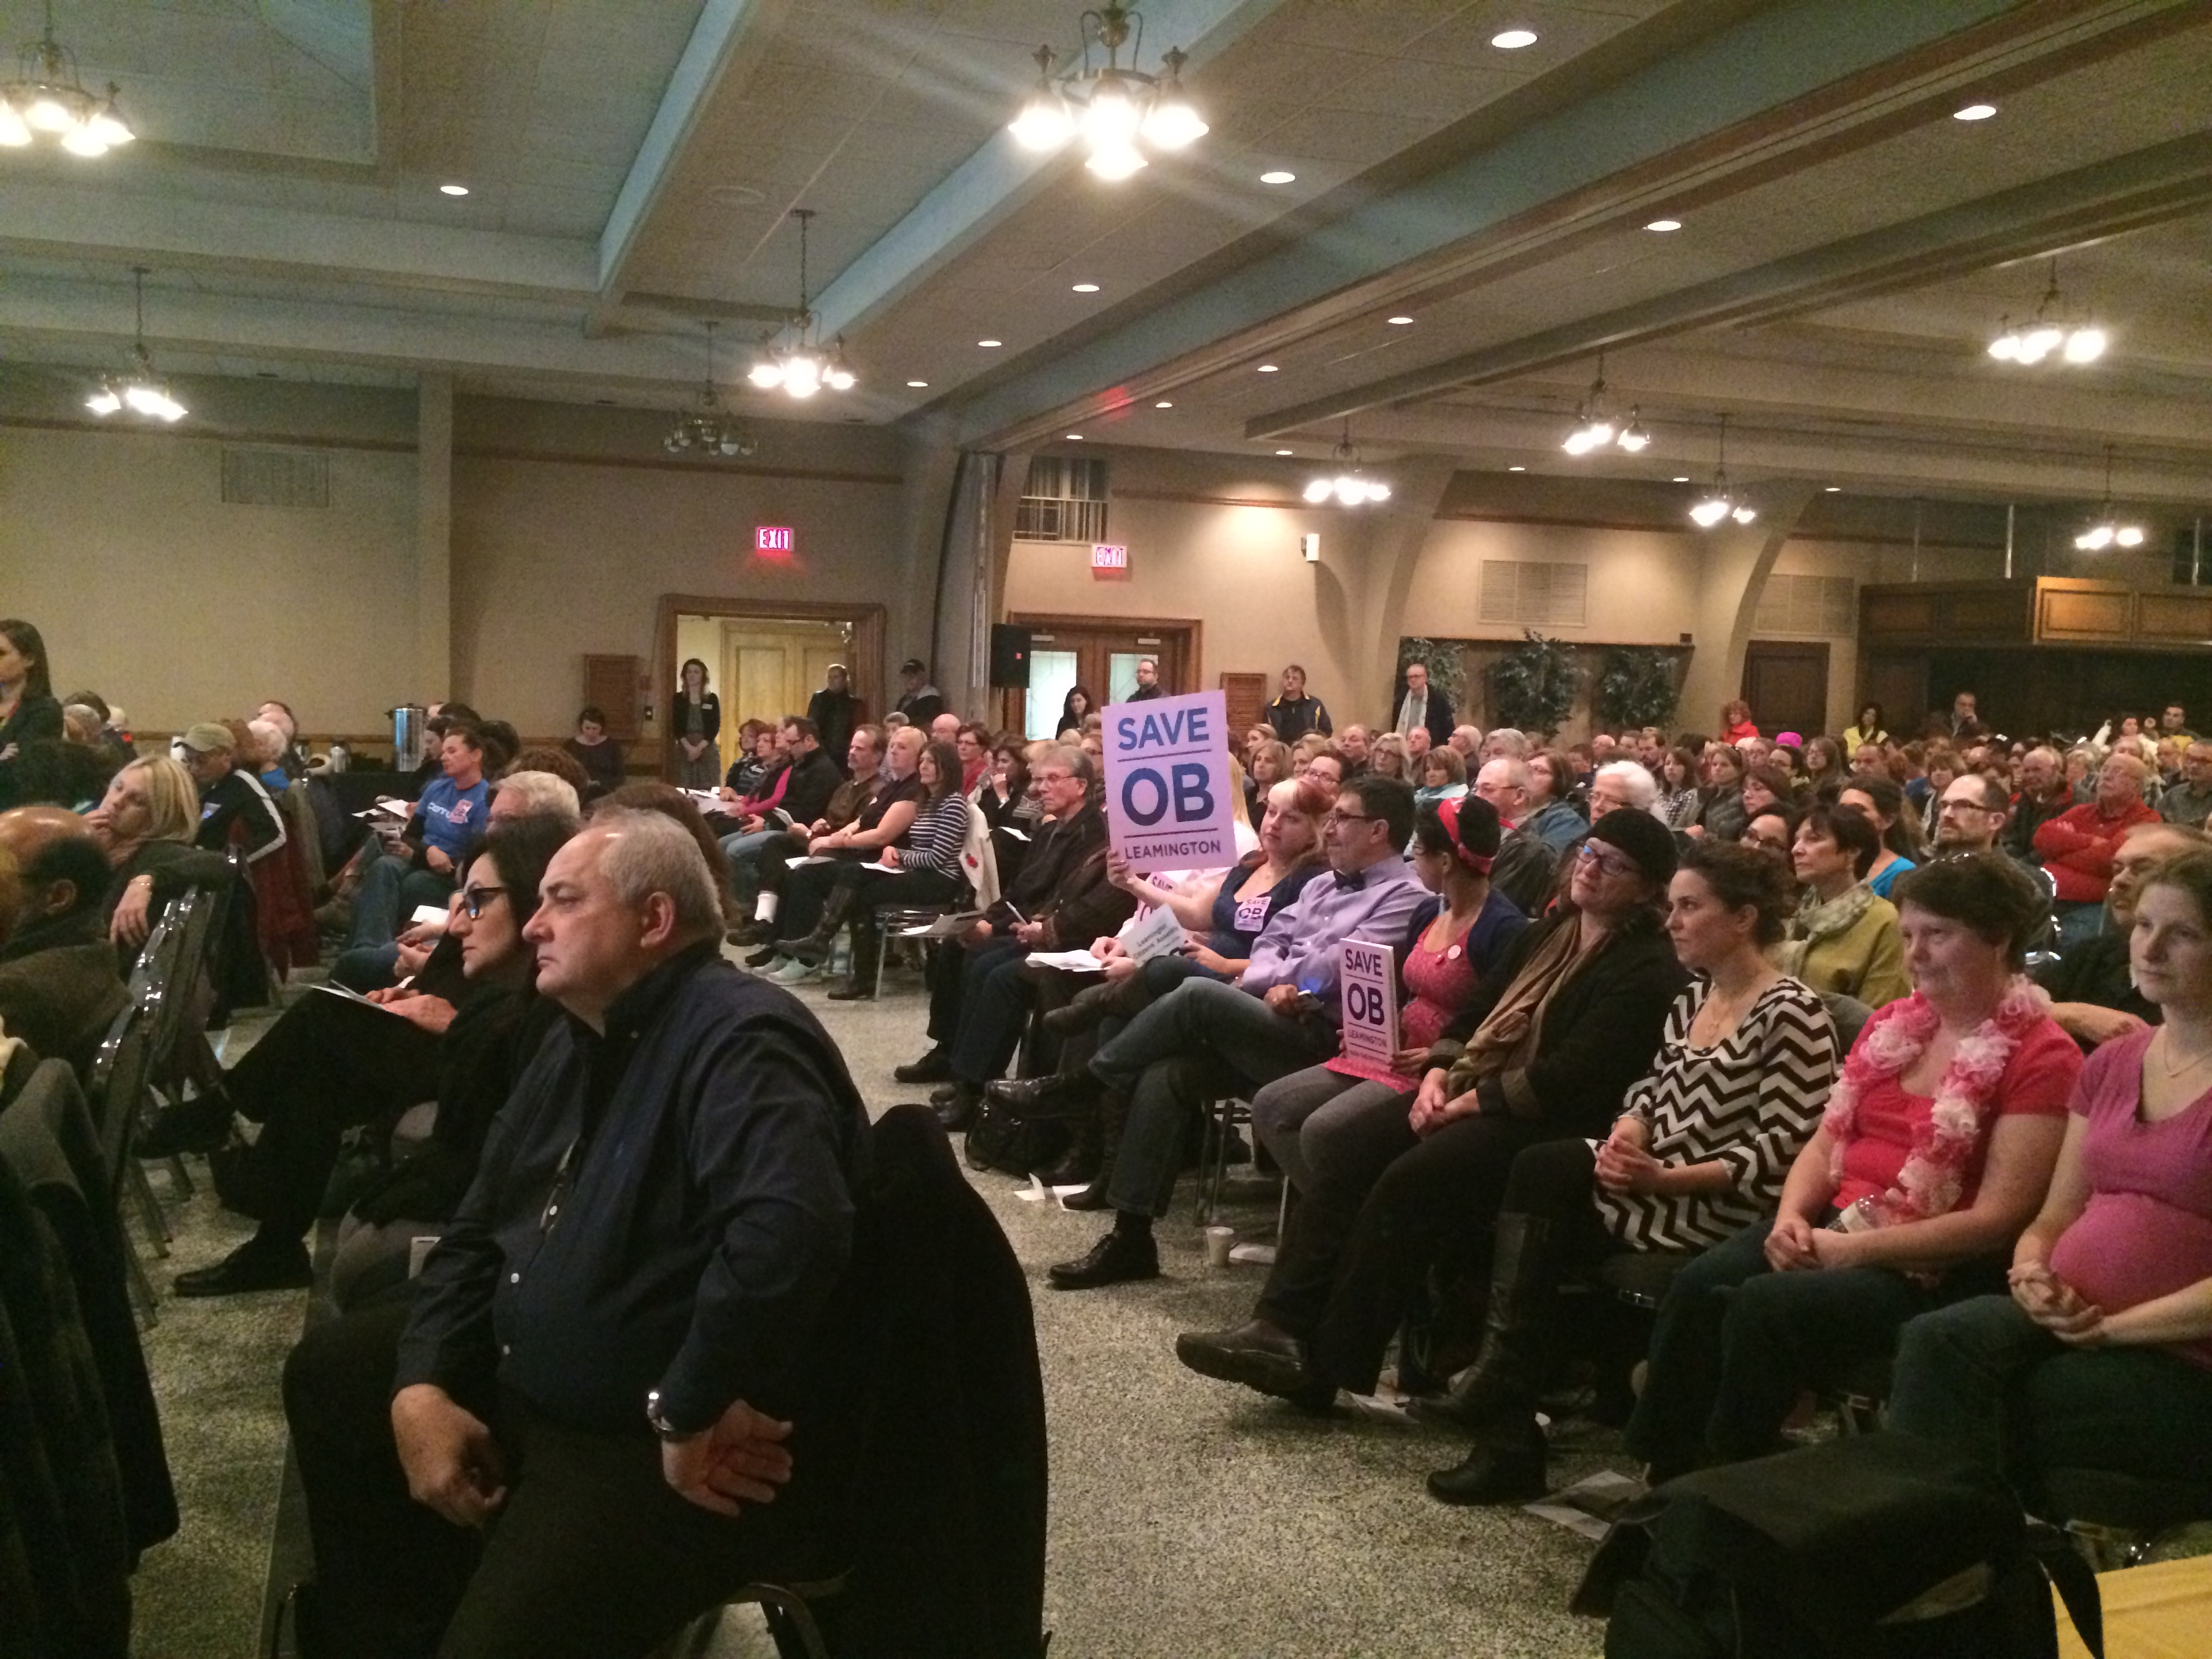 The Erie-St. Clair LHIN holds a special meeting at the Roma Club in Leamington on November 12, 2014 regarding the proposed closure of the obstetrics ward at Leamington District Memorial Hospital. (Photo by Ricardo Veneza)